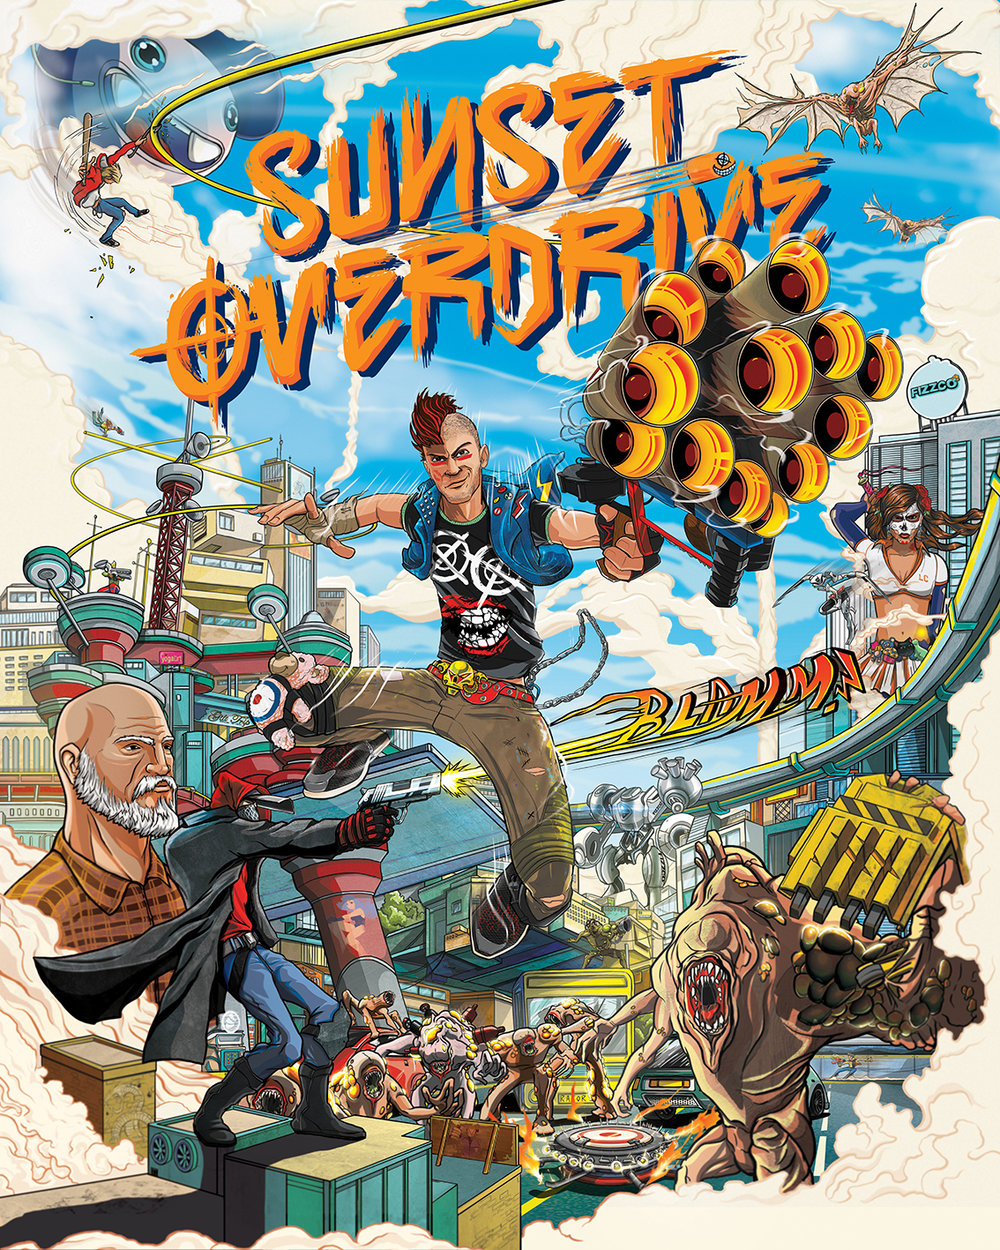 Sunset_Overdrive_KeyArt_Vert_RGB_Final[1].jpg